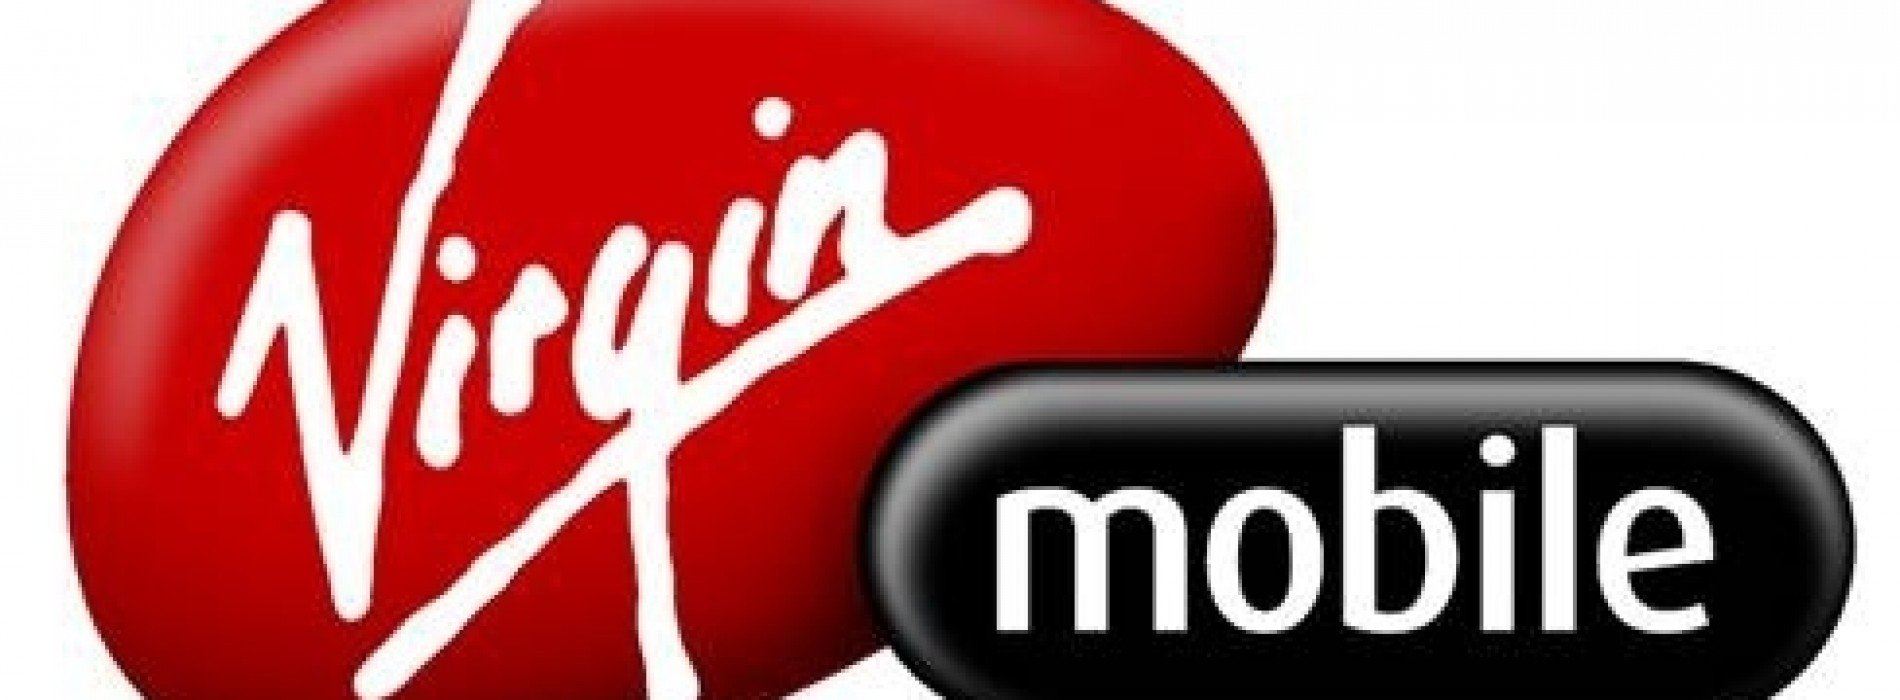 Virgin Mobile to launch HTC One V?